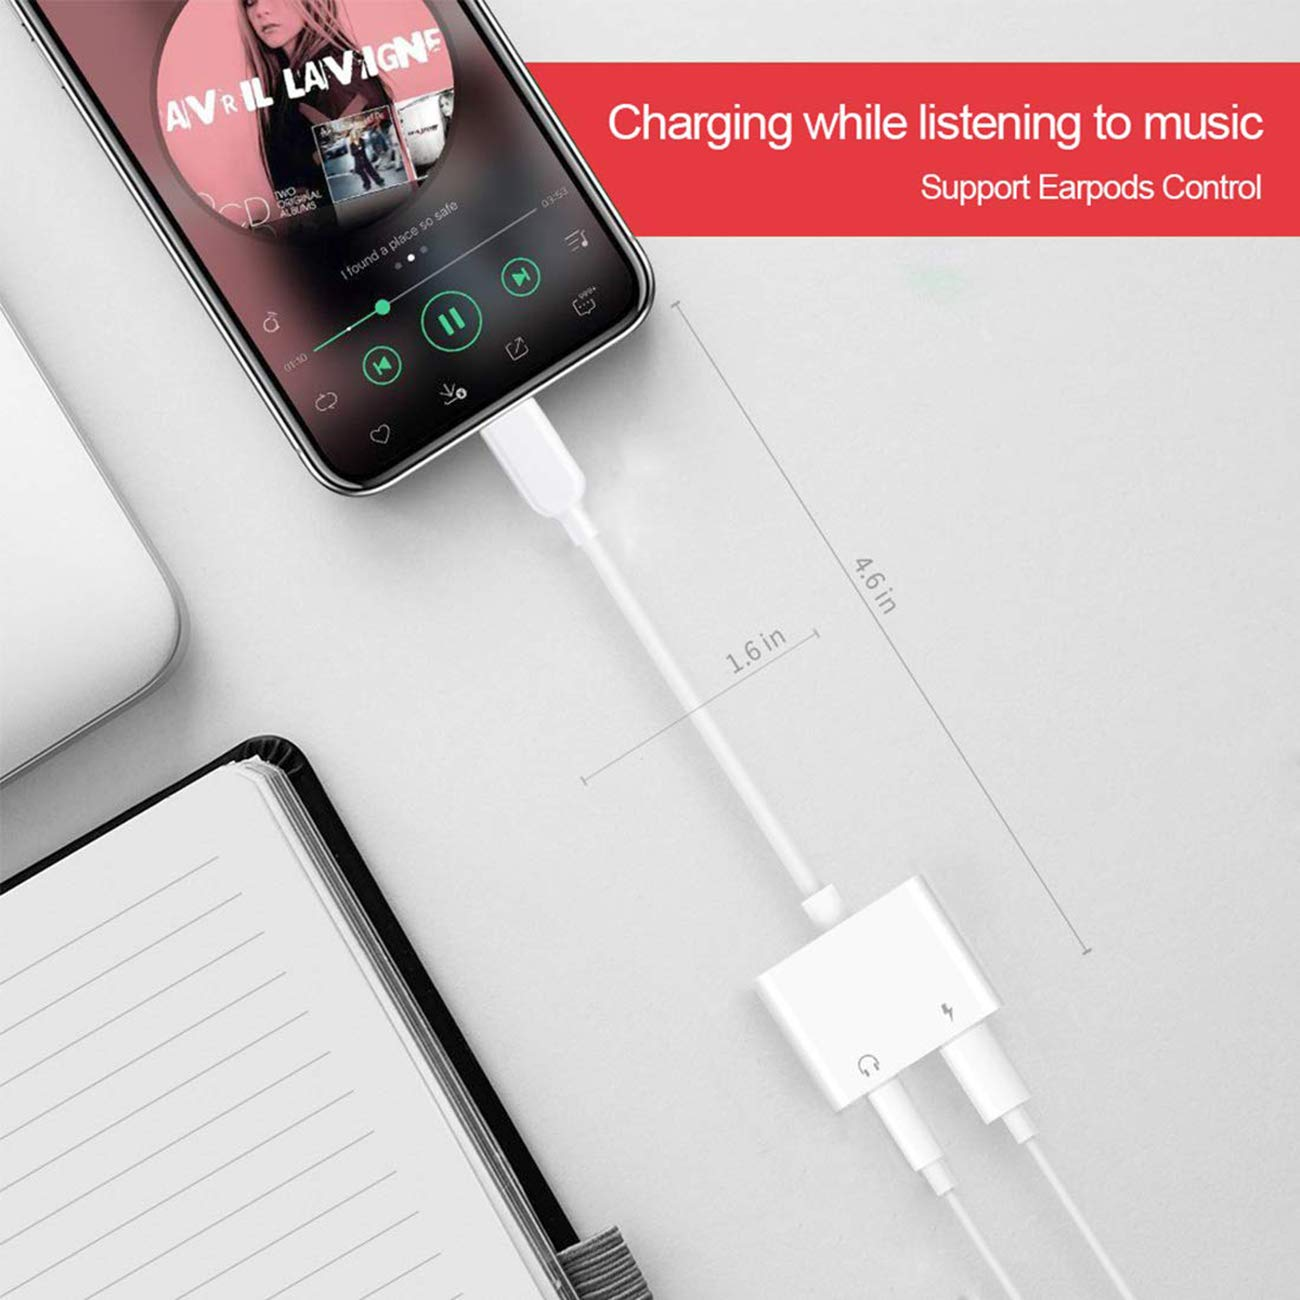 Headphone Adapter 3.5mm Jack Adaptor Charger for iPhone 8/8Plus for iPhone7/7Plus/X/10/Xs/XSmax,Earphone 3.5mm Adaptor Cable AUX Audio&Wire Control Headset Extender Connector Support iOS 10.23 System by Birstin (Image #4)